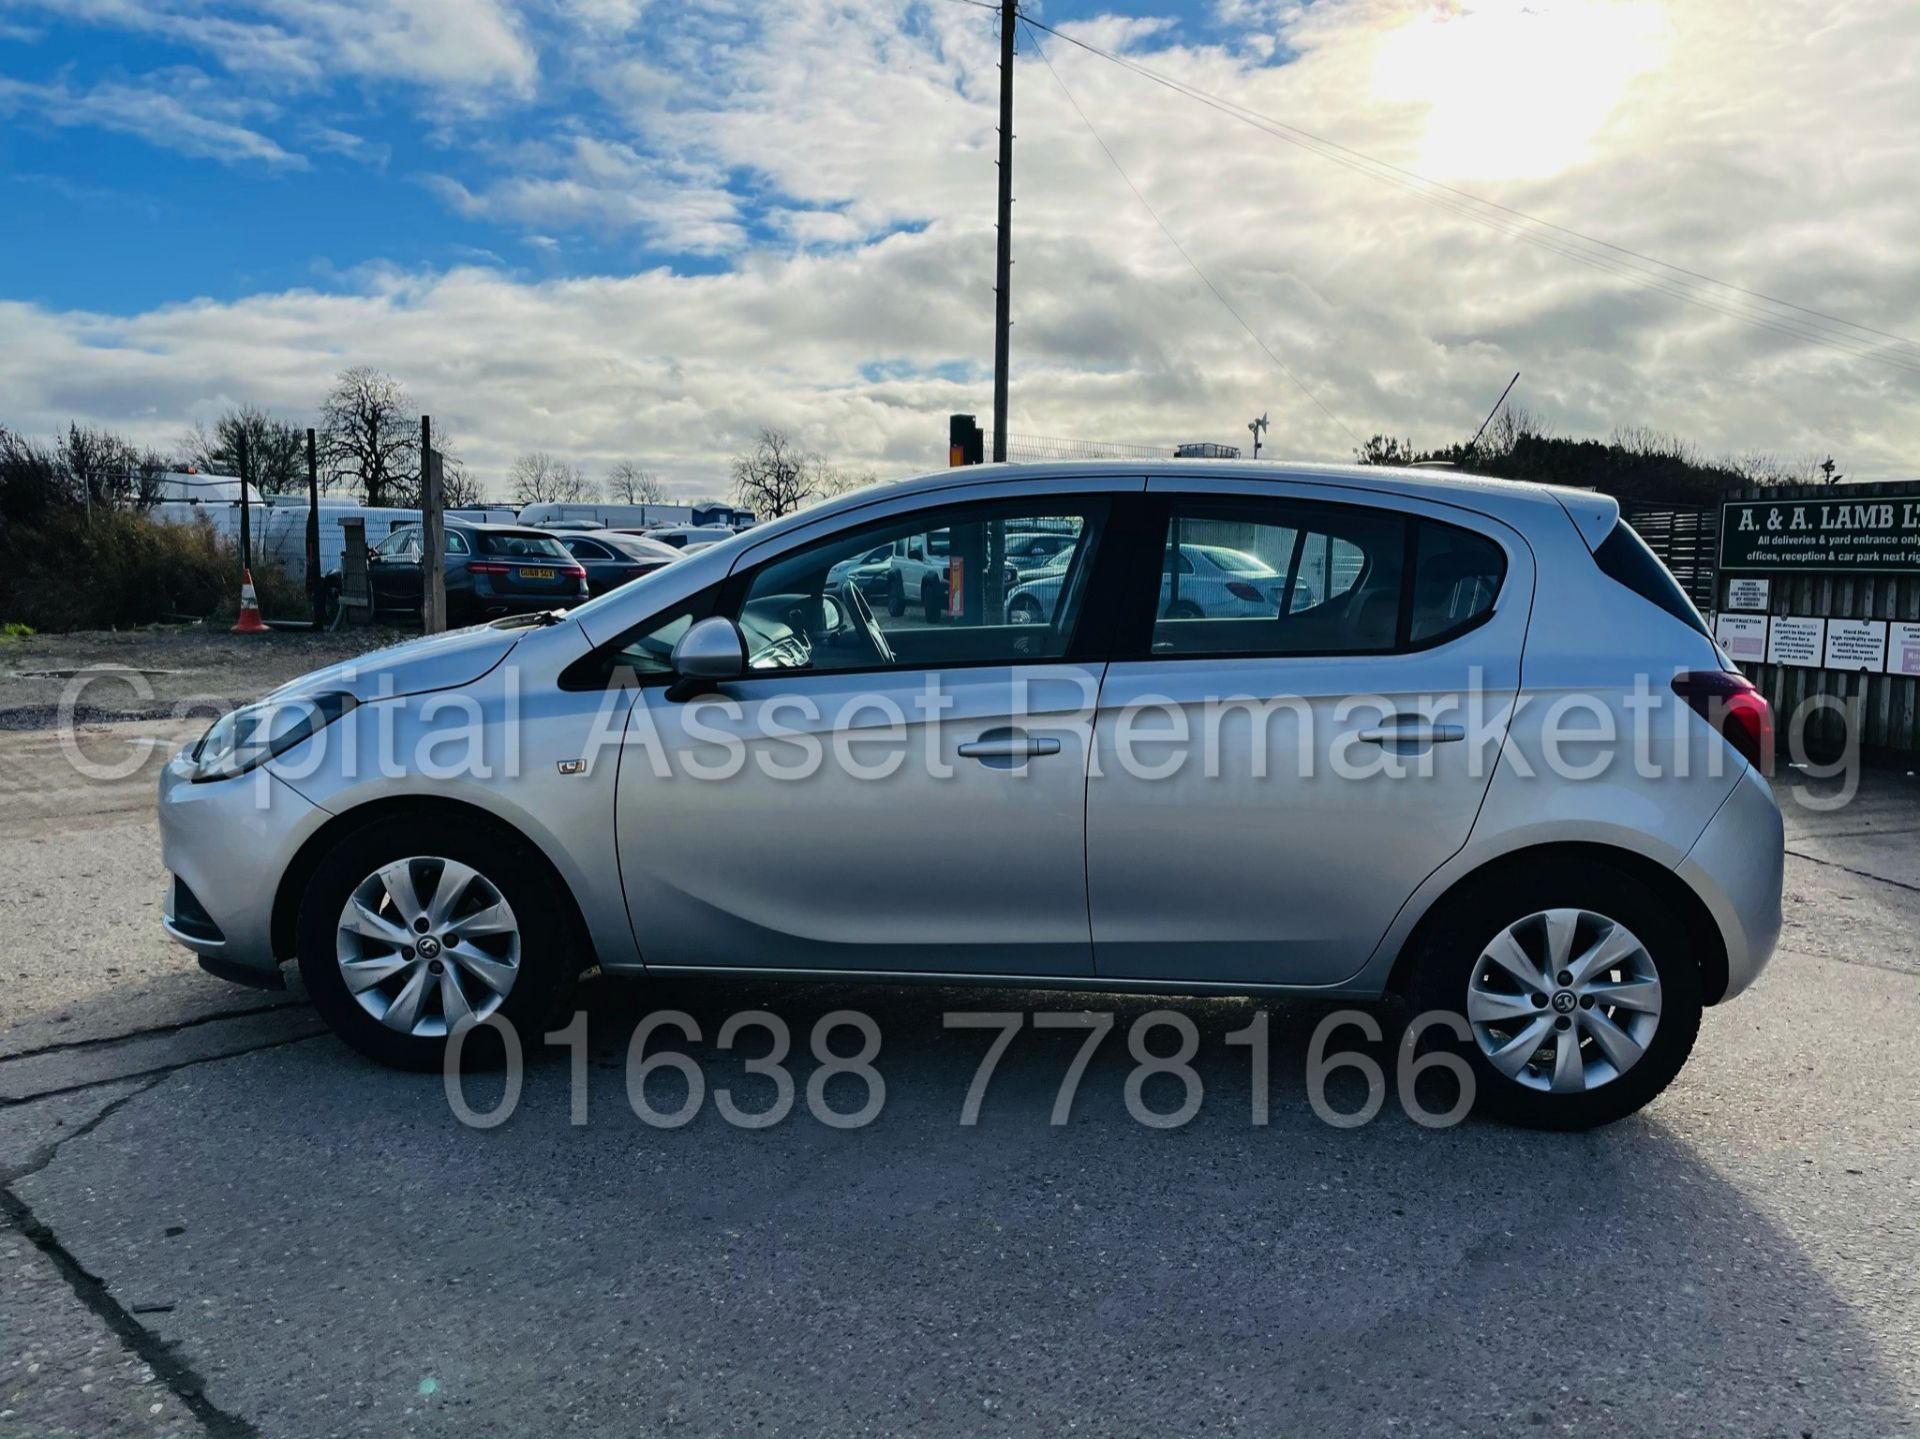 On Sale VAUXHALL CORSA *DESIGN EDITION* 5 DOOR HATCHBACK (2019 - NEW MODEL) 1.4 PETROL - (1 OWNER) - Image 8 of 42